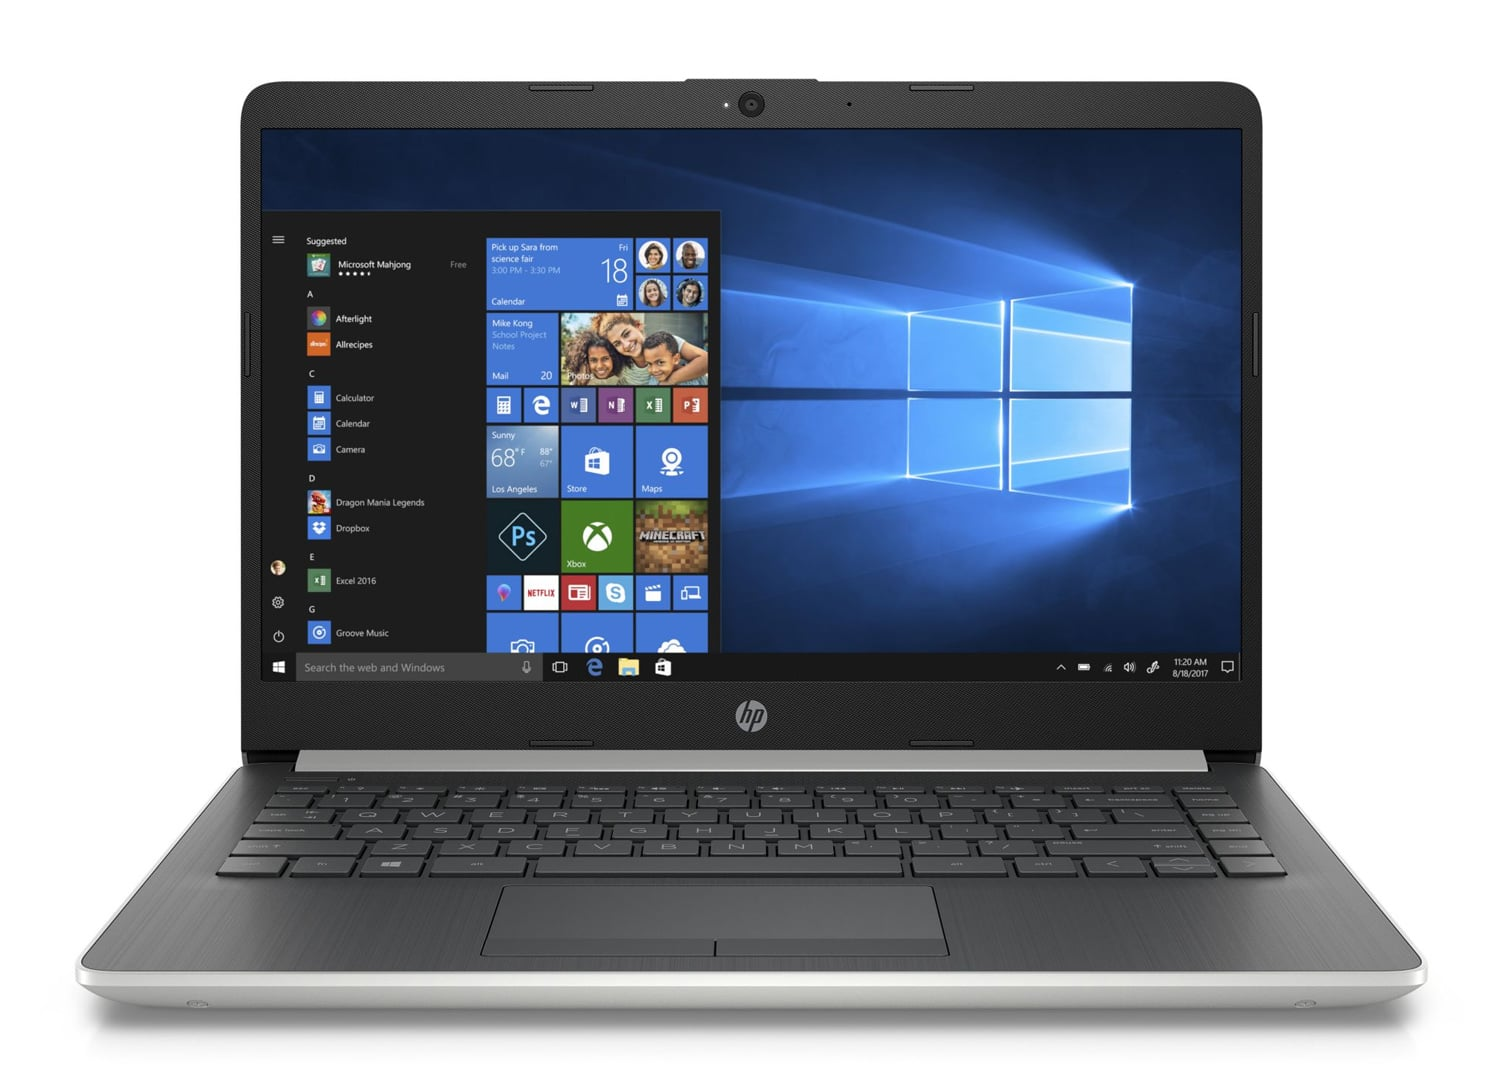 "HP 14-dk0004nf, PC portable 14"" léger gros stockage rapide (249€)"